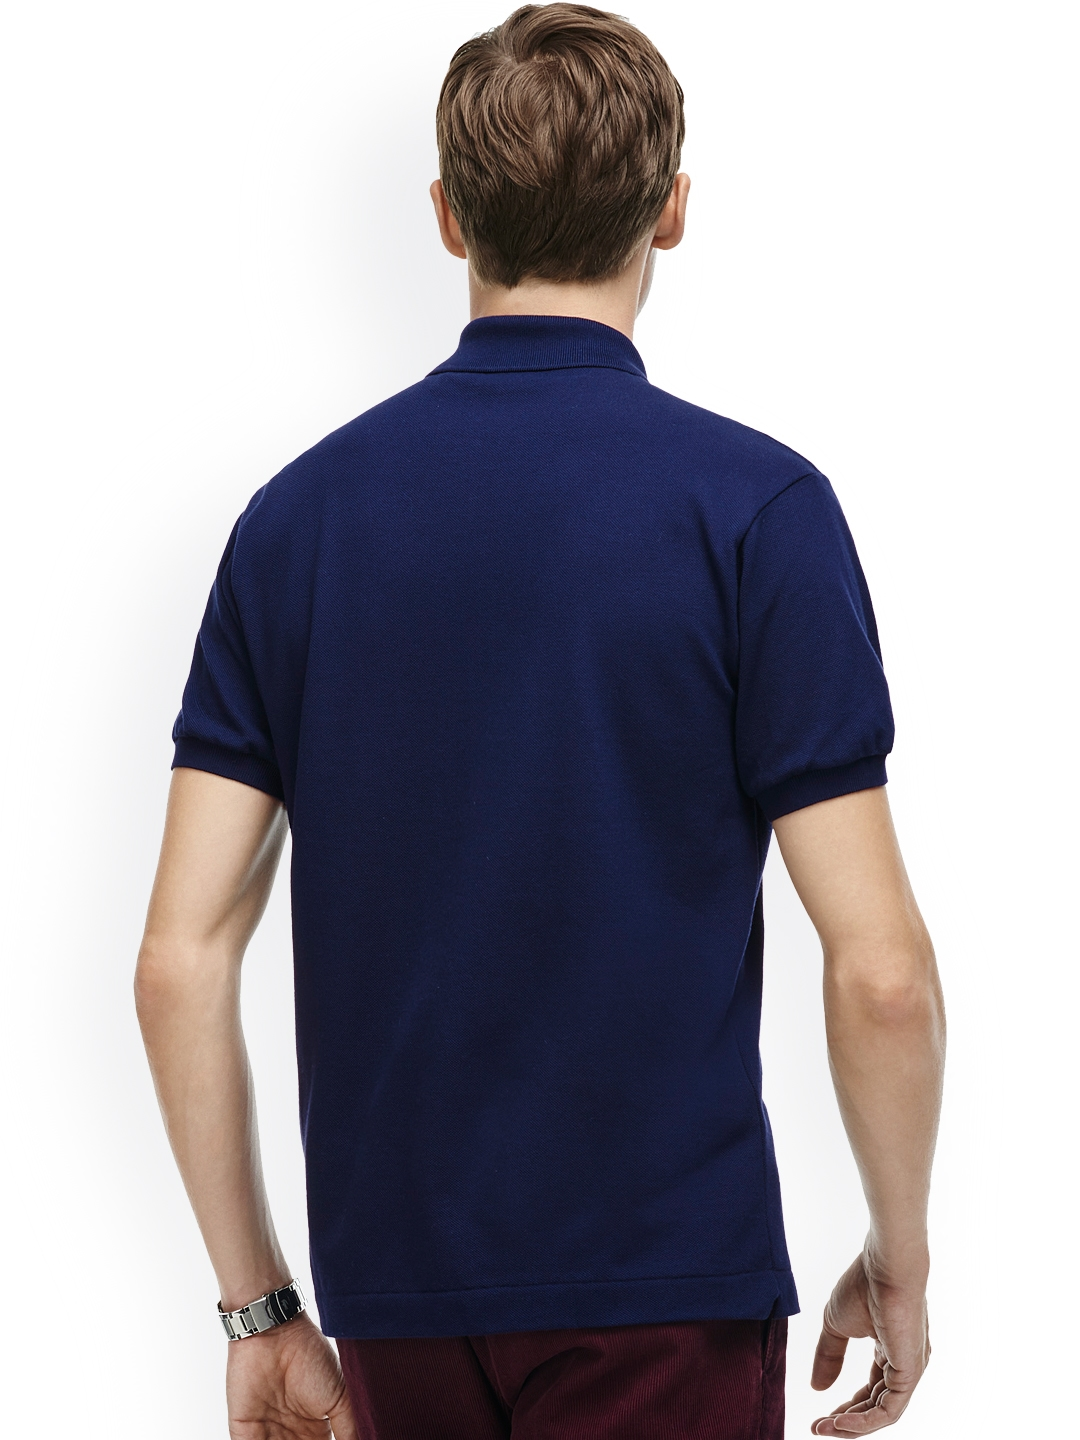 2e2cde1c Buy Lacoste Navy Blue Classic Fit L.12.12 Polo - Tshirts for Men ...